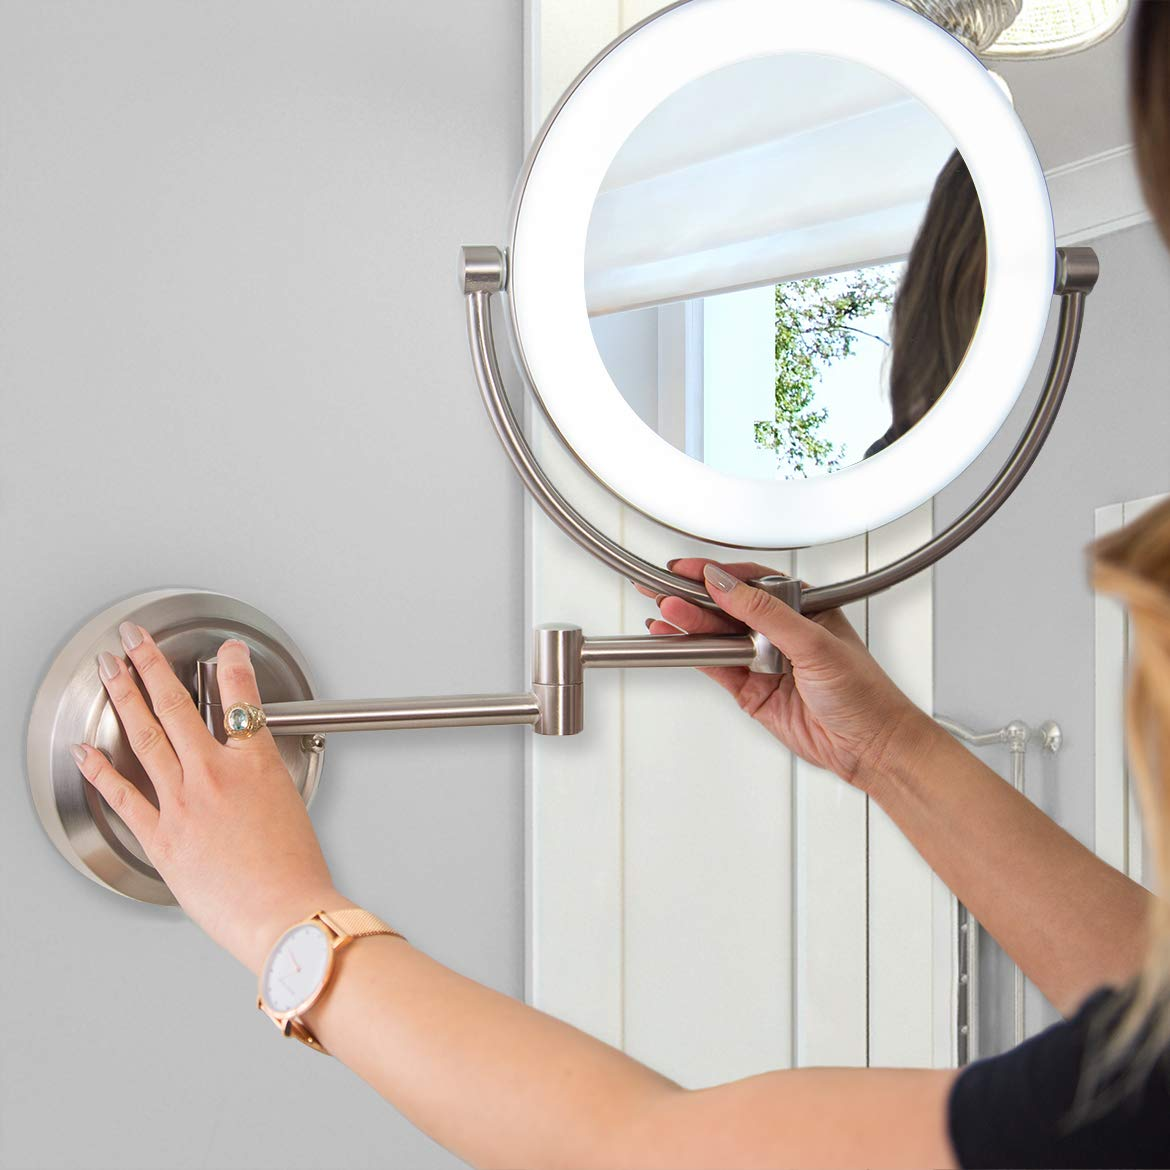 Zadro Dual Sided Surround Light Swivel Wall Mount Make Jerdon Mounted Mirror Wiring Diagram Up With 1x 10x Magnification Hardwire Ready Beauty